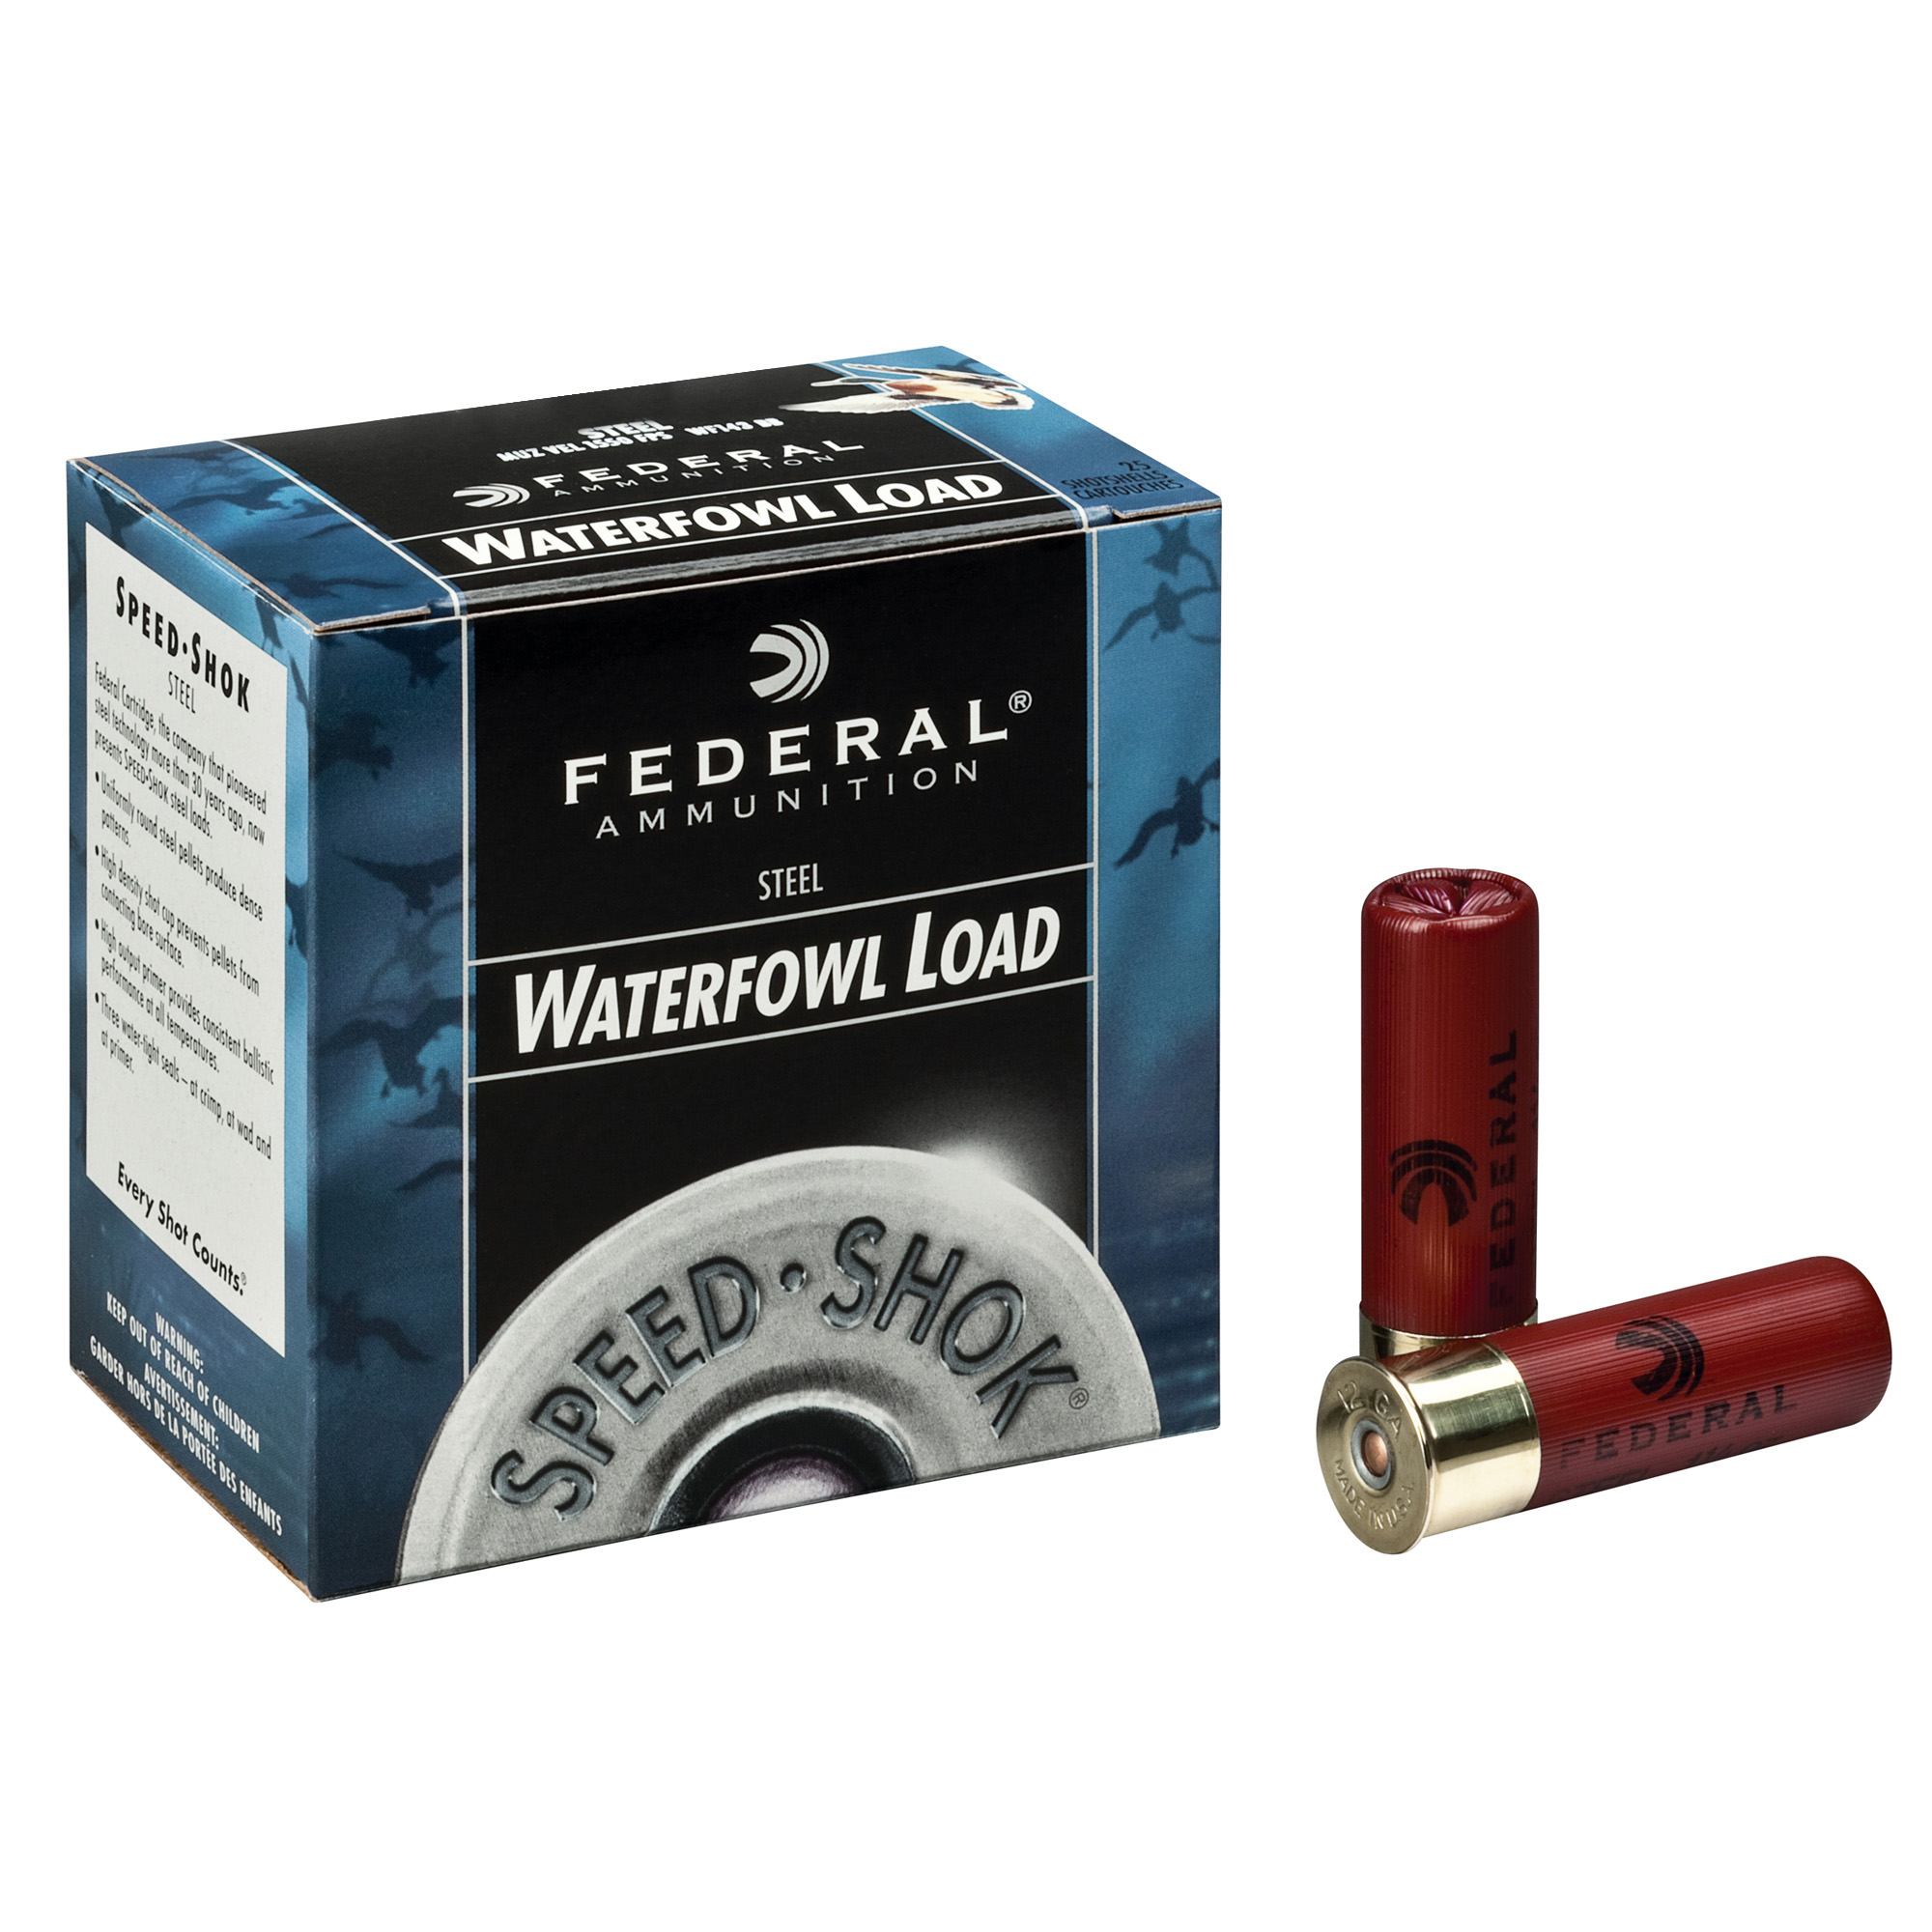 Federal Premium Speed-Shok Waterfowl Ammo, 12 Gauge, 3-1/2″, 1-3/8 oz, #4